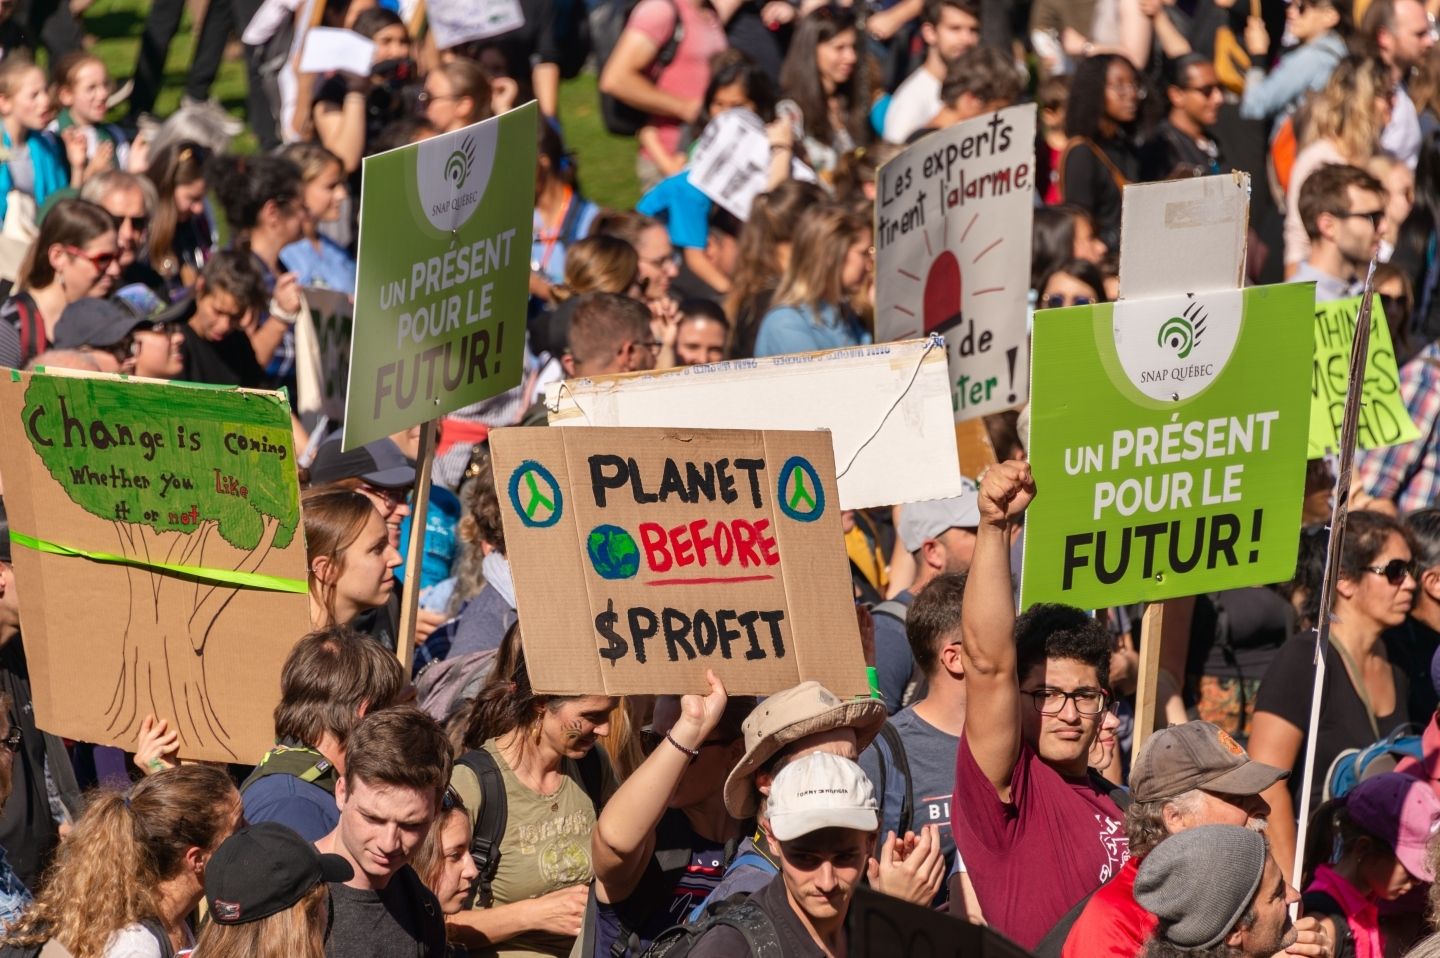 Demonstrators take part in the Montreal Climate March. (Shutterstock)